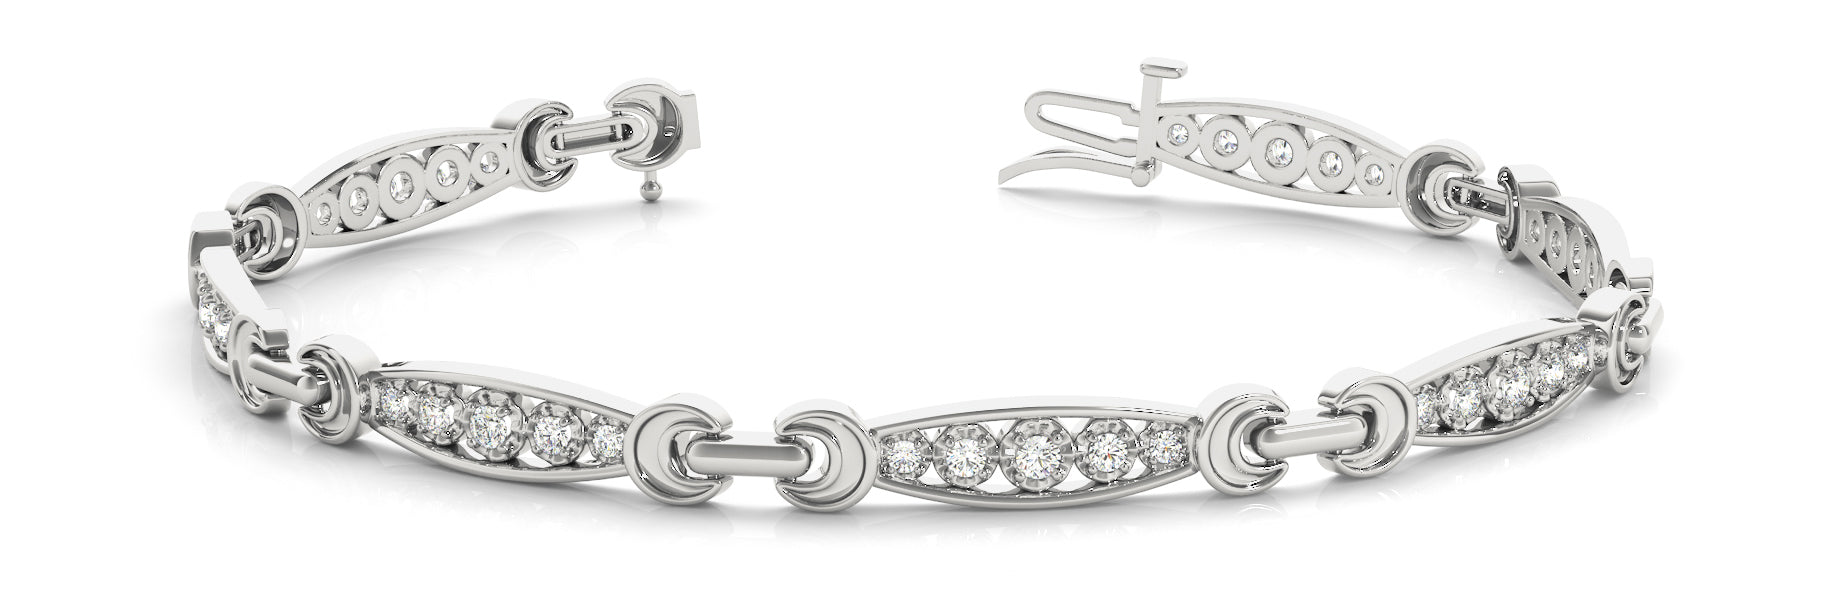 Fancy Diamond Bracelet Ladies 0.33ct tw - 14kt White Gold